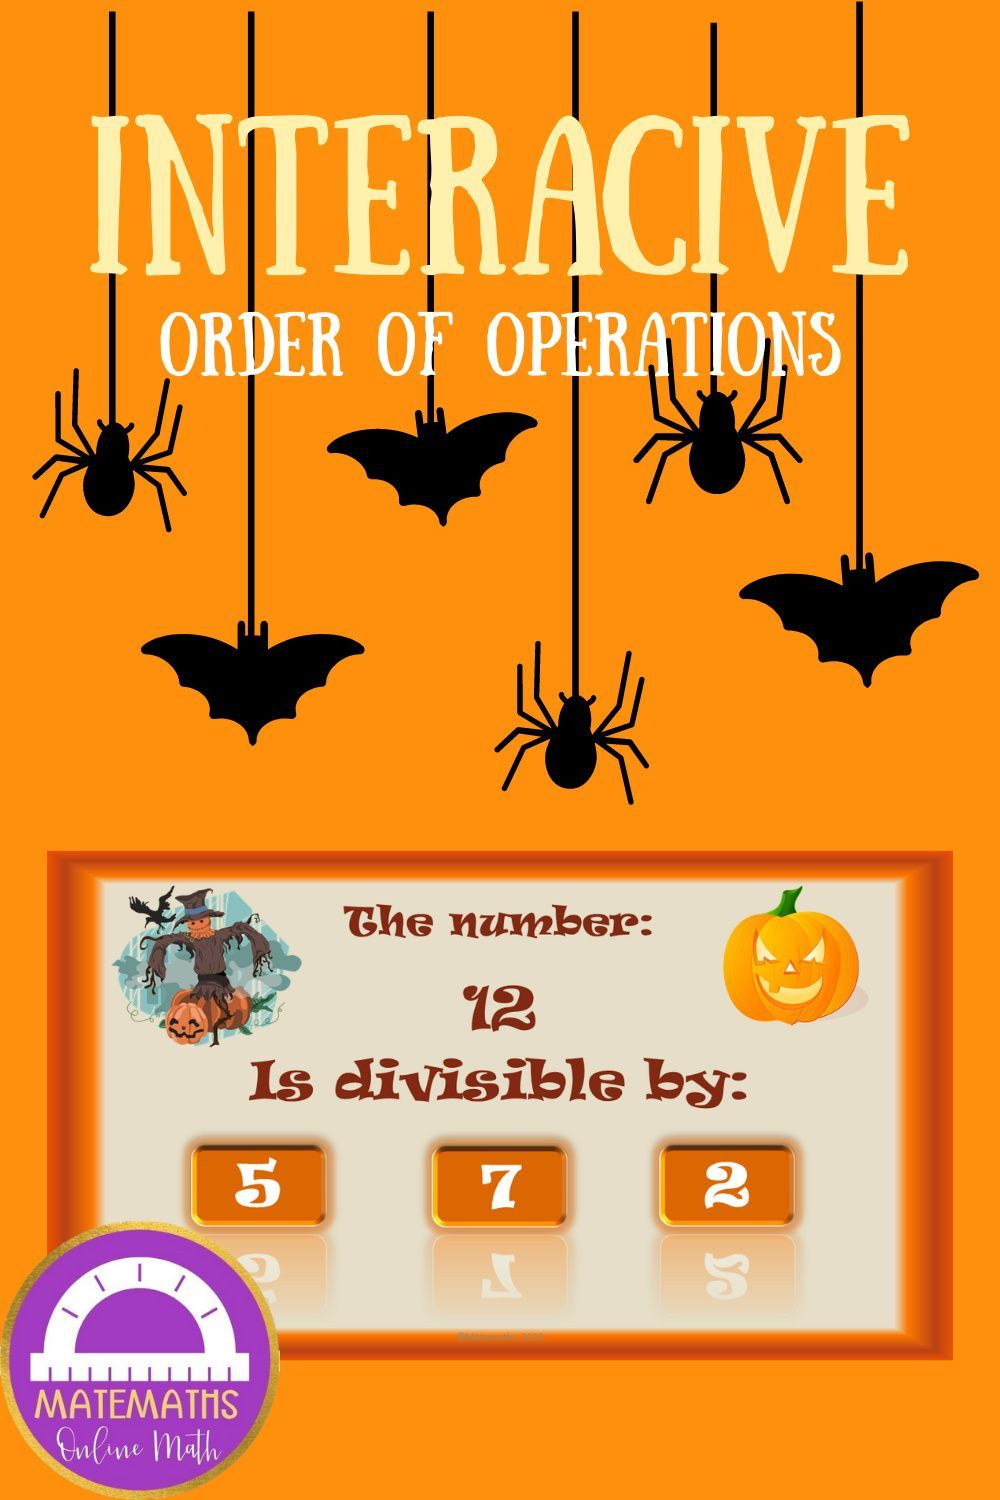 Math Divisibility Rules Activity Interactive Halloween Halloween Teaching Halloween Resources Math Problem Solving Activities